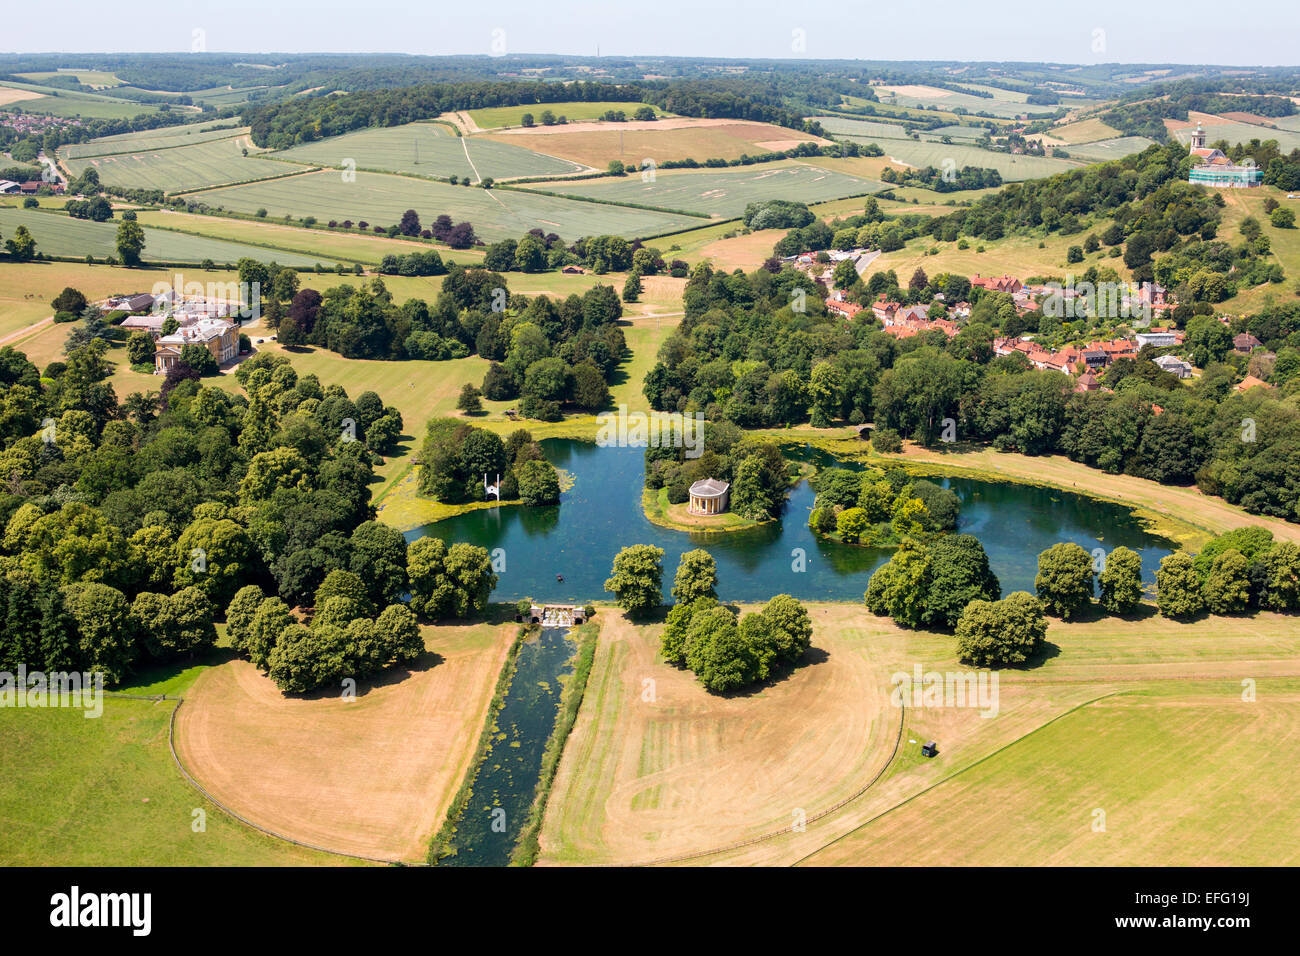 Aerial view of West Wycombe Park stately home and lake in rural landscape, Buckinghamshire, England - Stock Image